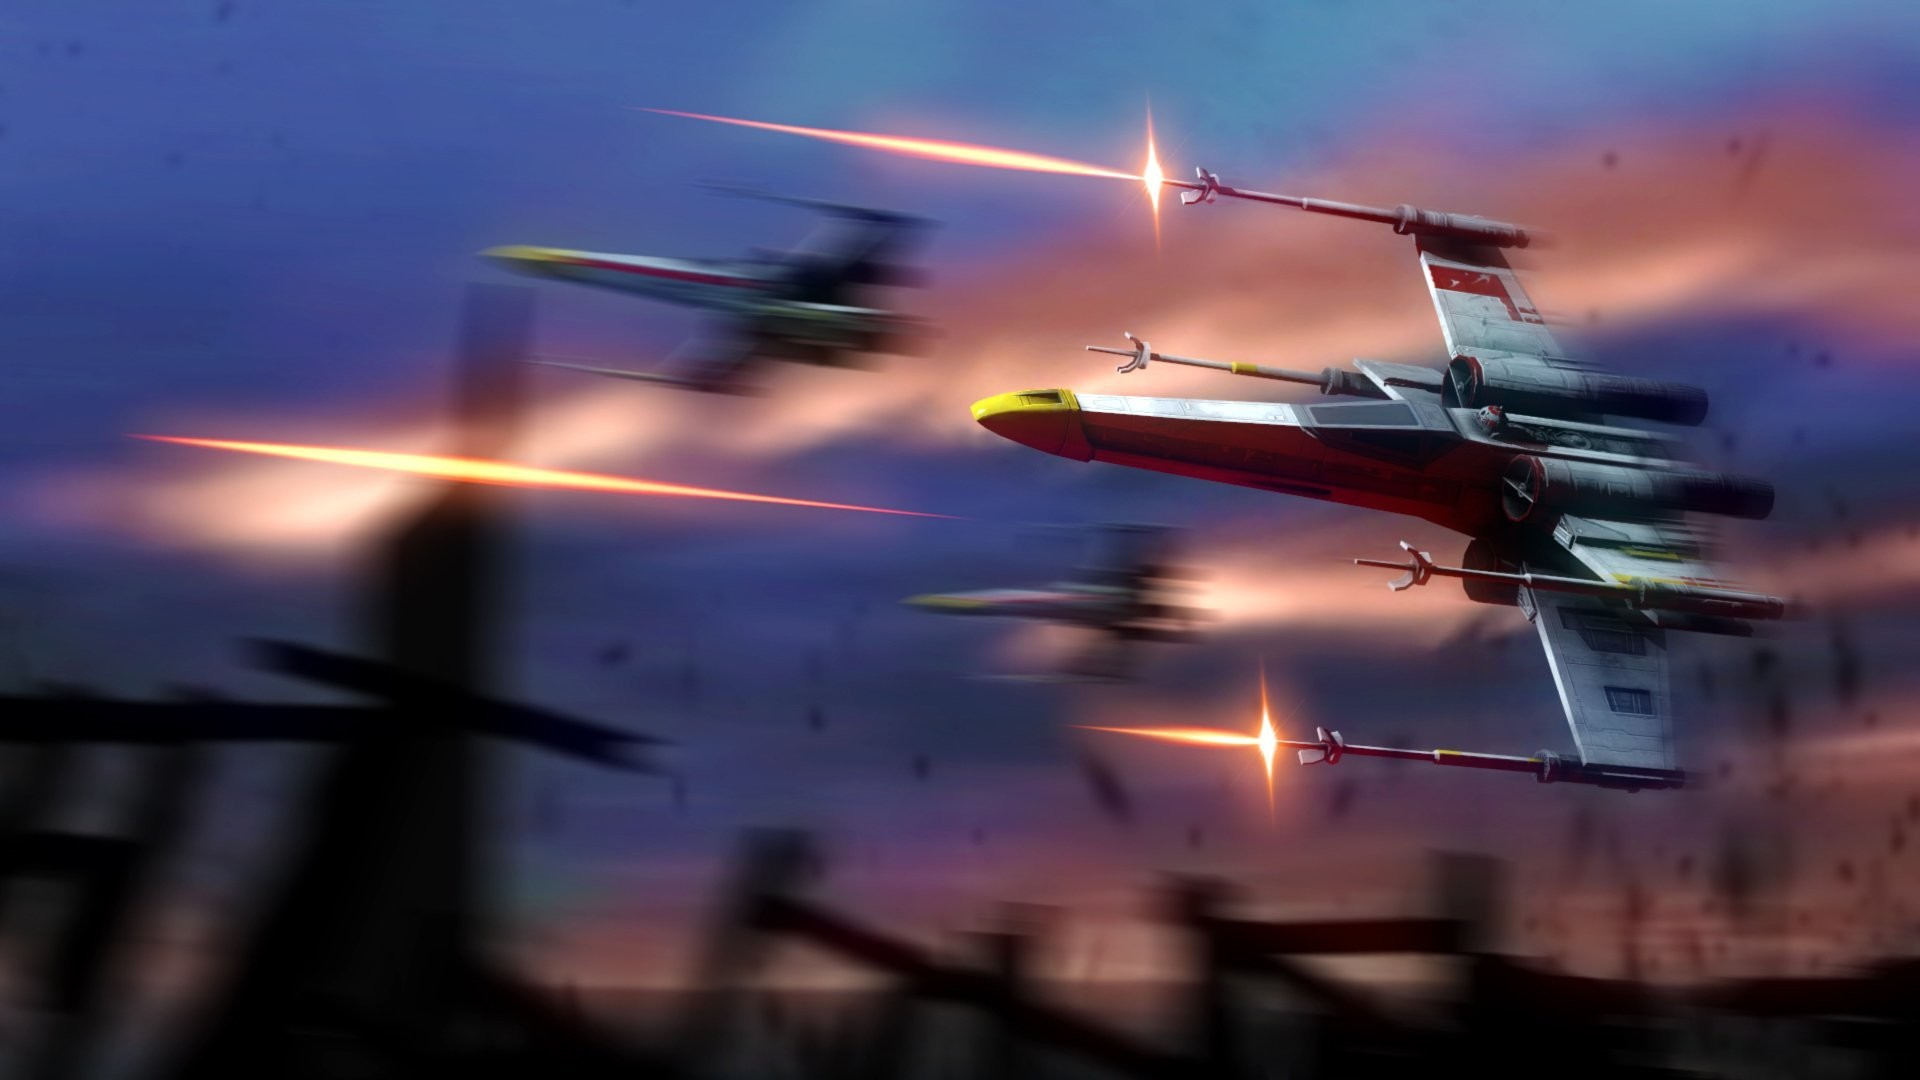 1920x1080 star wars x-wing fan art fiction